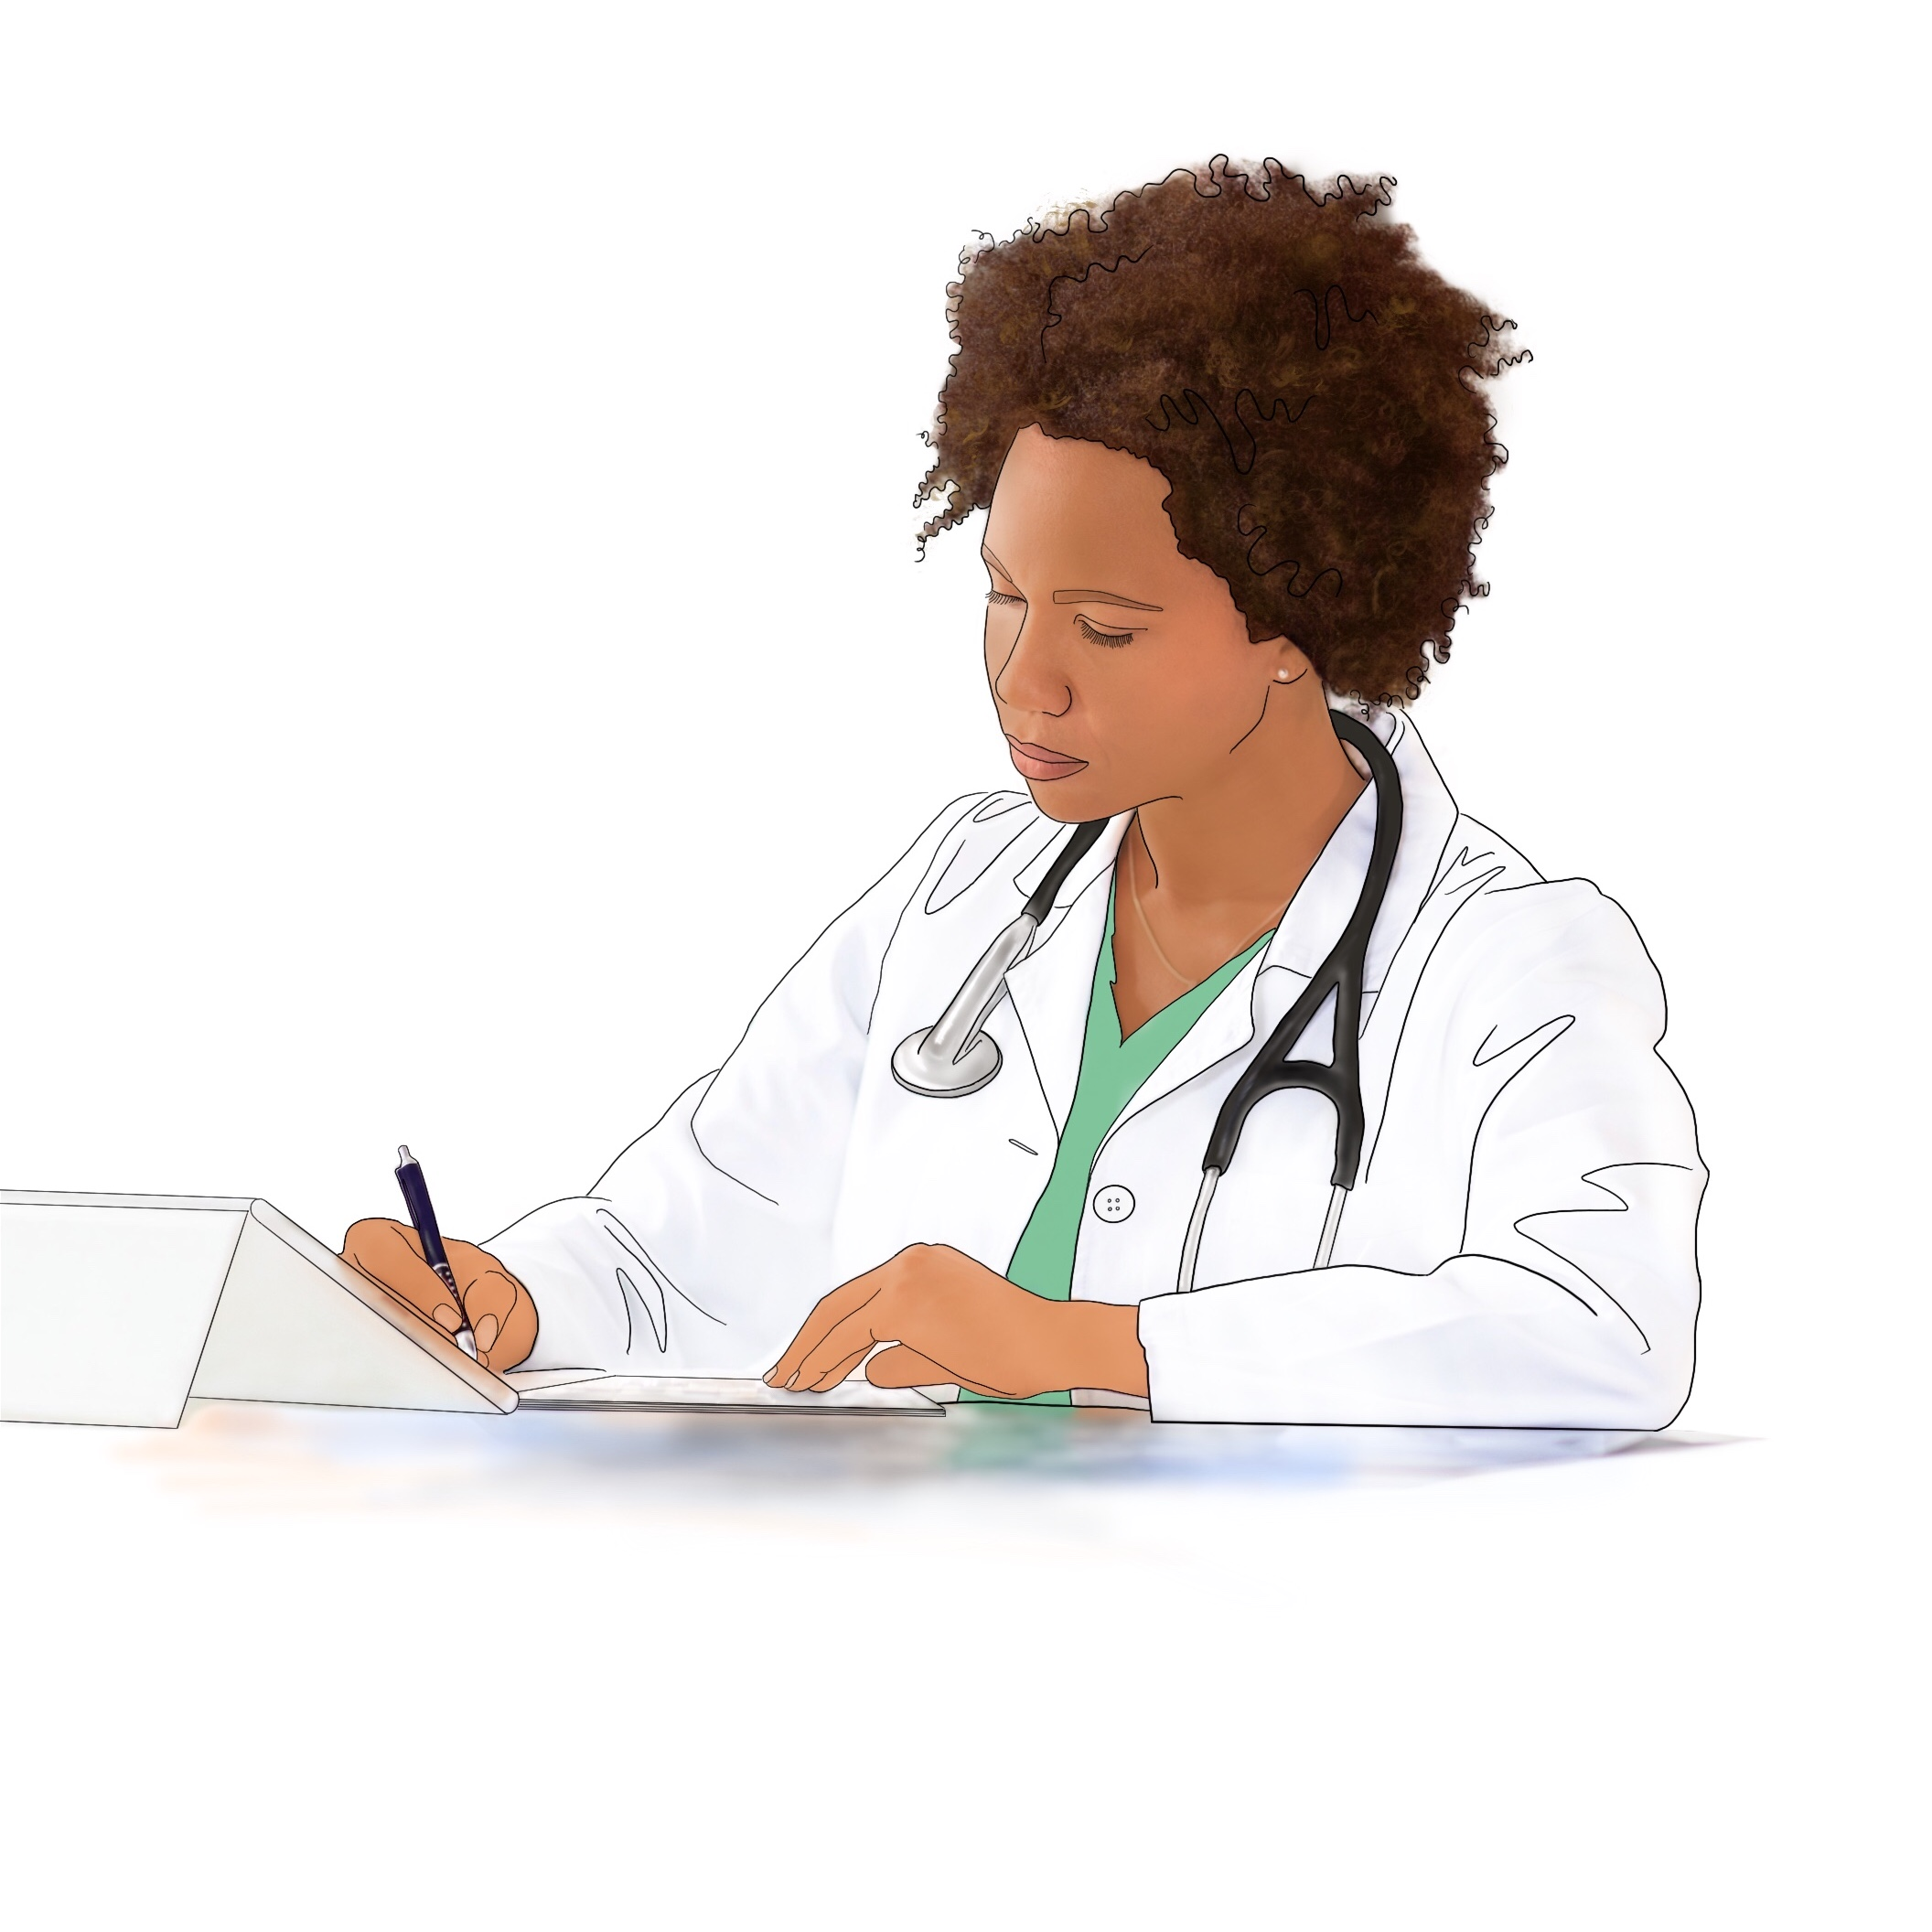 A drawing of a medical provider writing an order for treatment for sleep apnea